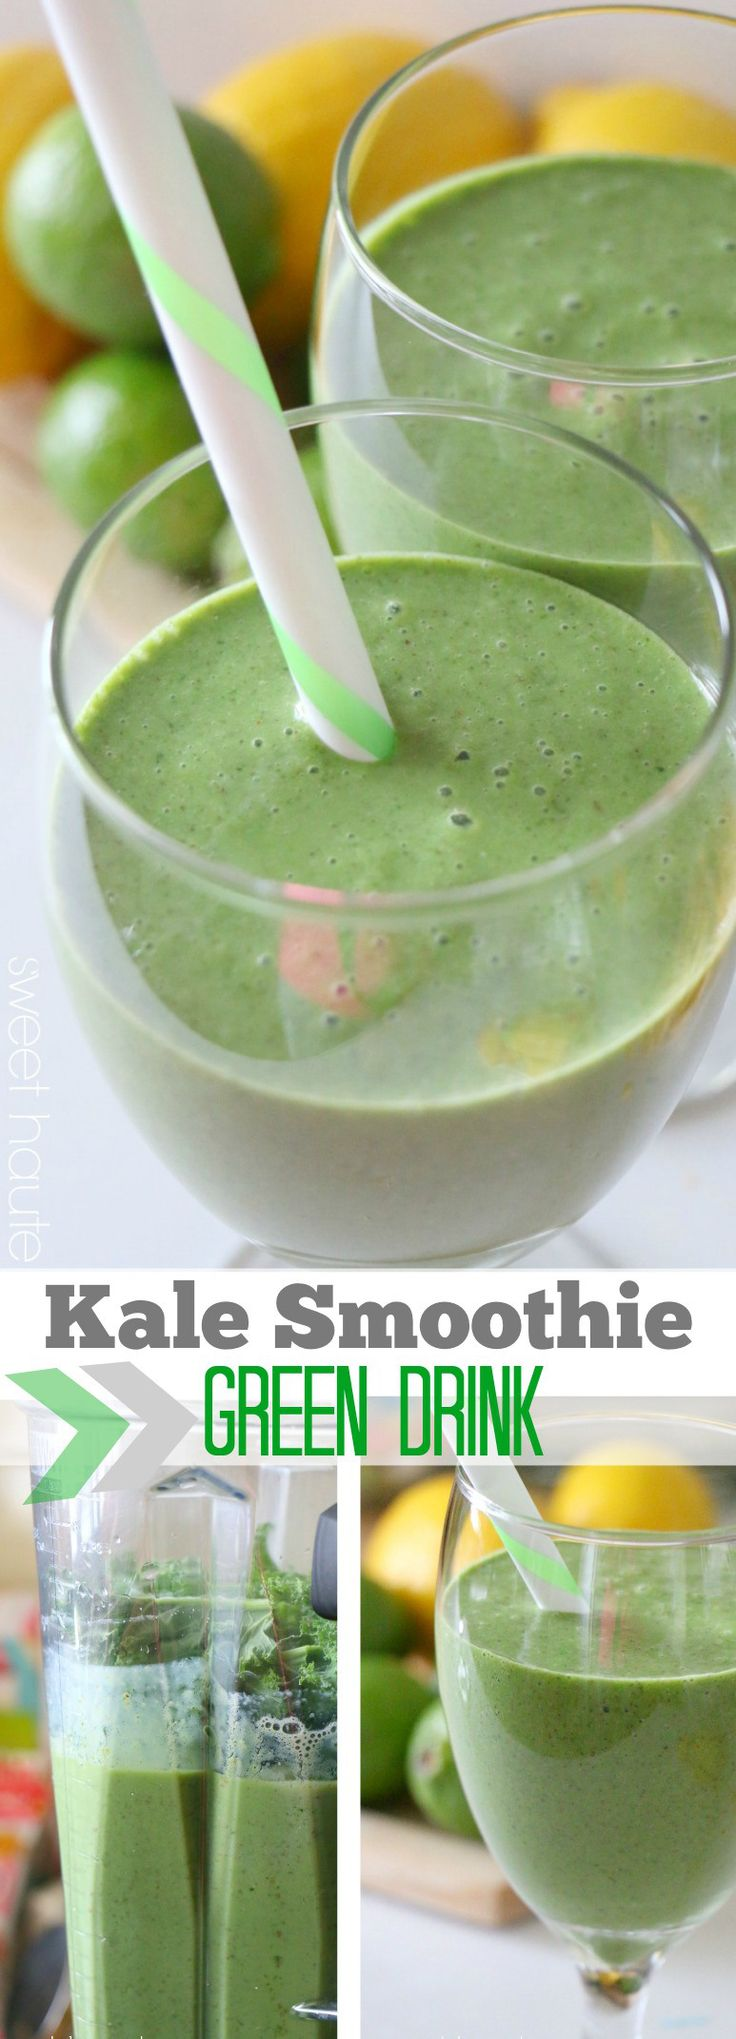 Kale smoothie green drink recipe tutorial 2 ways-SWEET HAUTE pin now...make later! #whole30 #paleo #alkalising